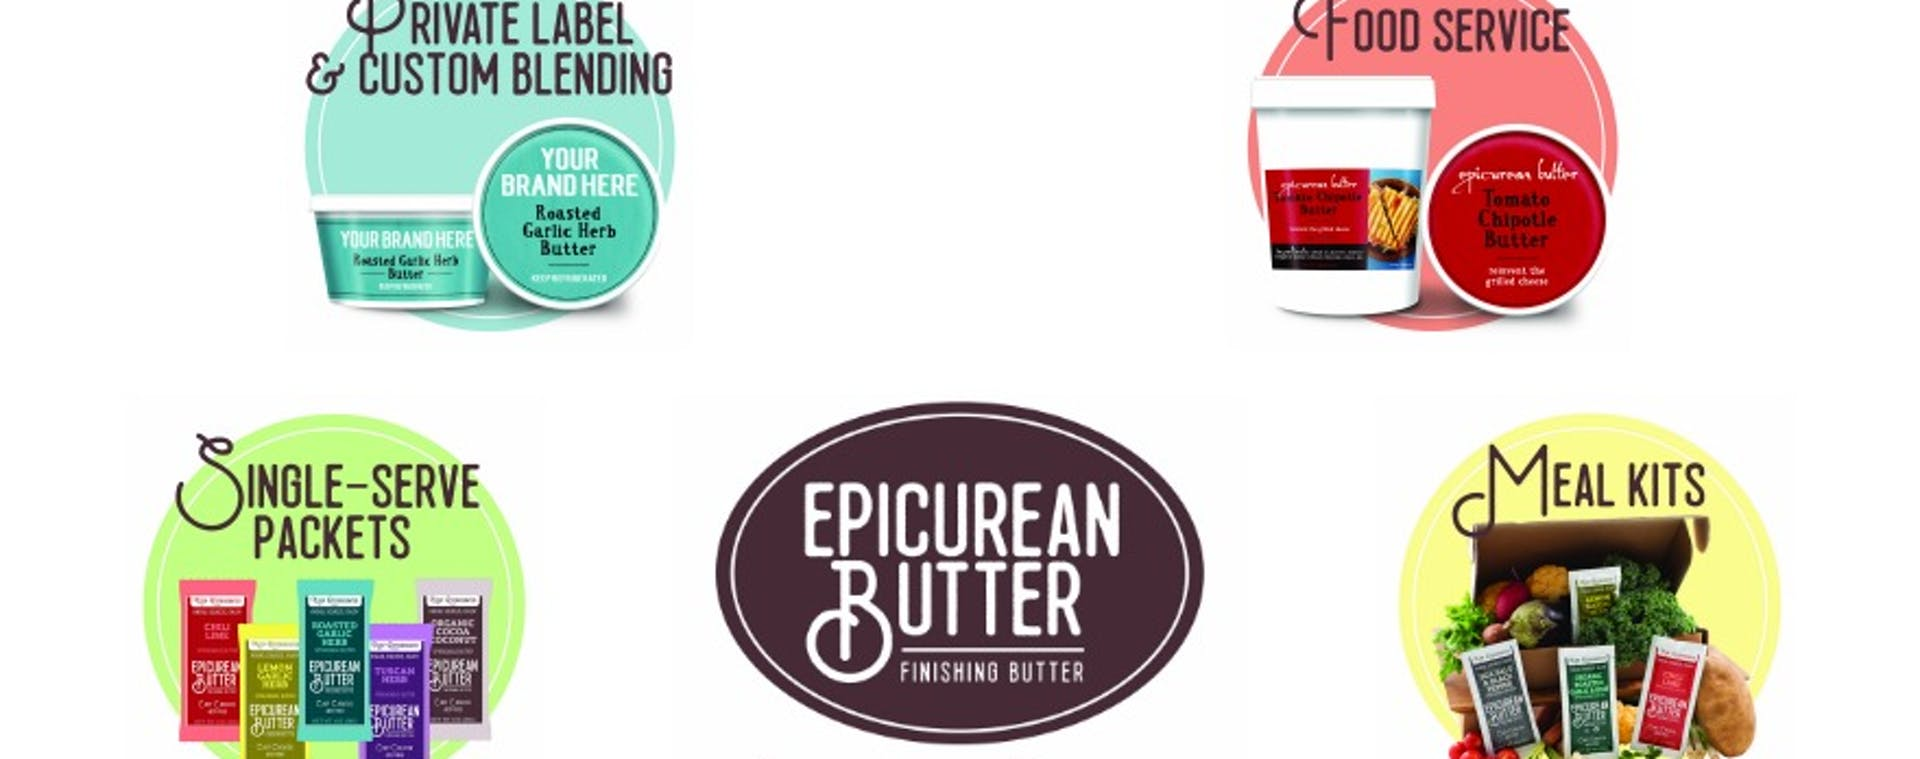 Epicurean Butter Business Lines